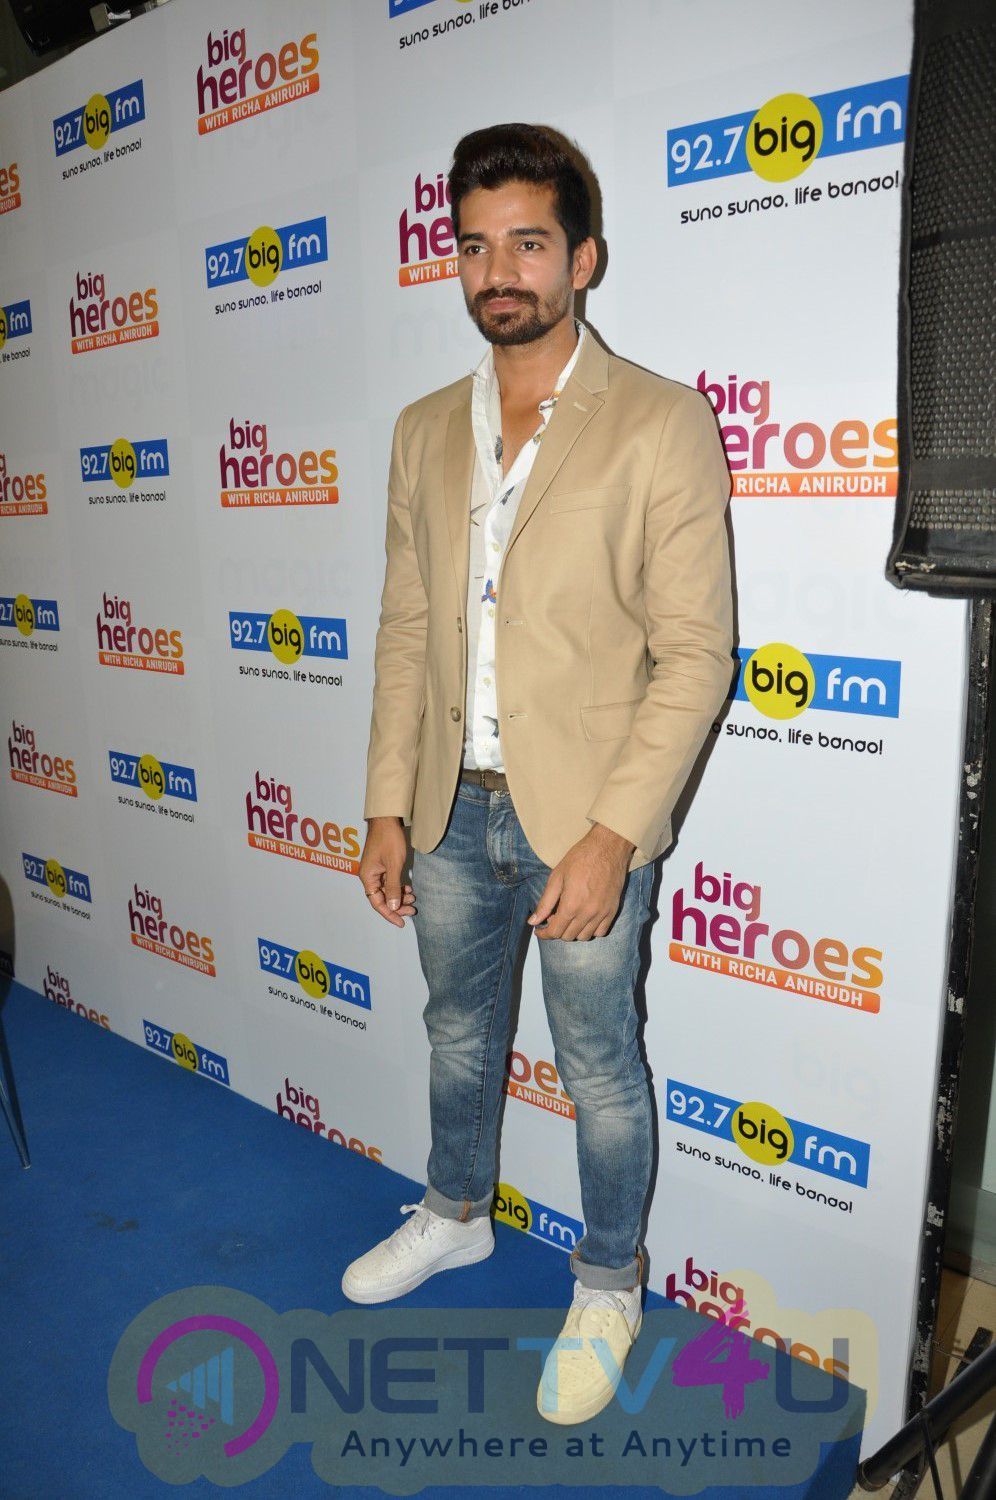 Photos Of Launch Of Big Fm Brand New Show Big Heroes With Manoj Bajpai Jimmy Shergill & Divya Dutta